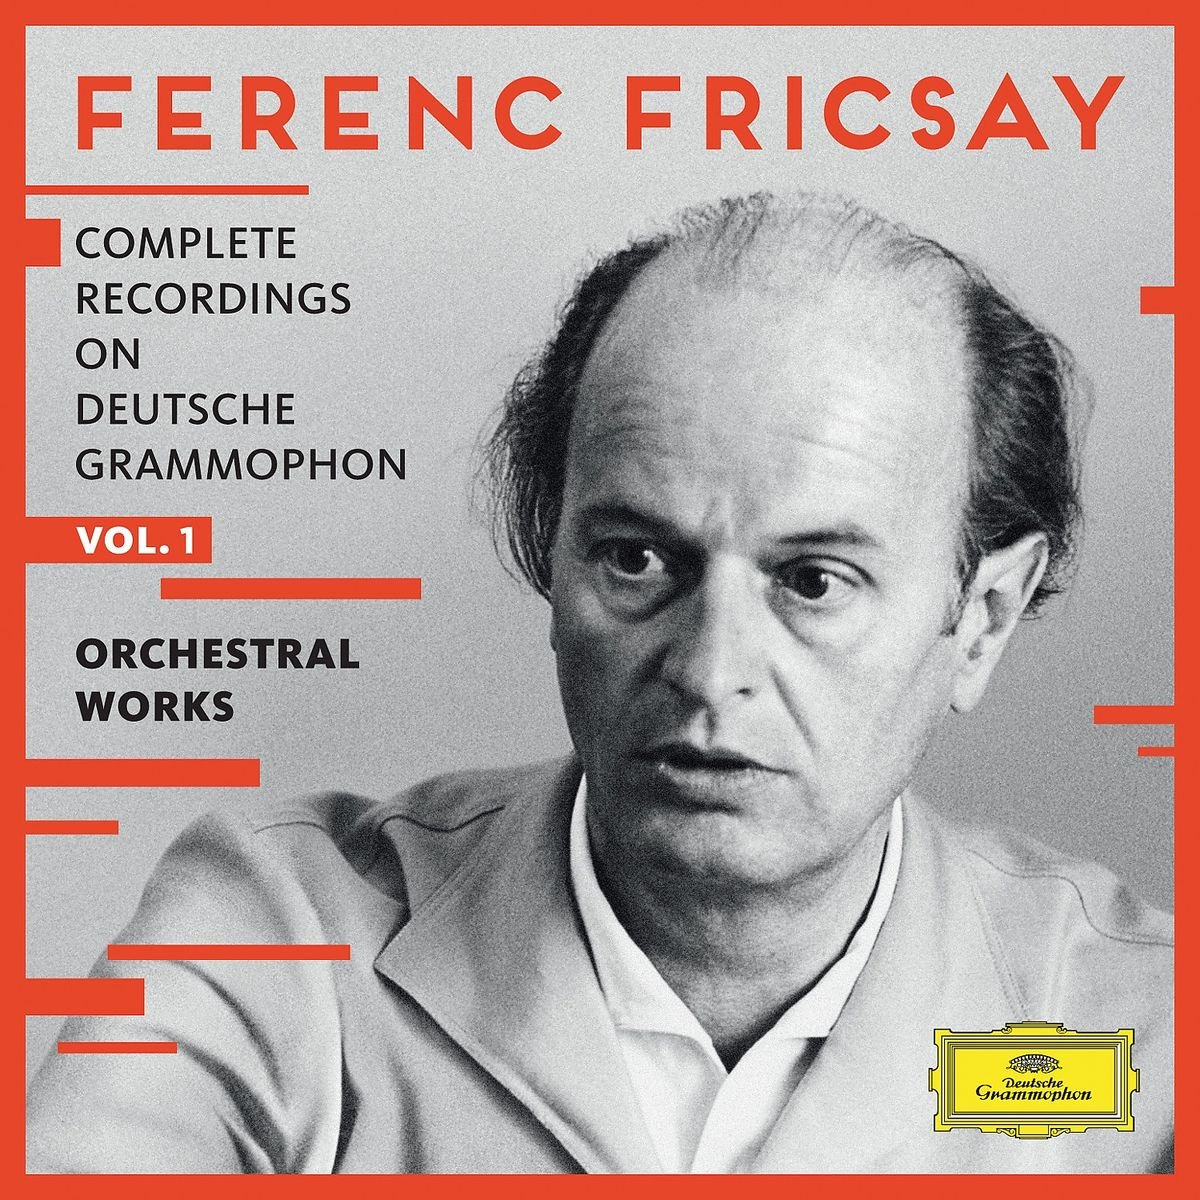 Ferenc Fricsay: Complete Recordings on Deutsche Grammophon, Vol.1 - Orchestral Works by CD